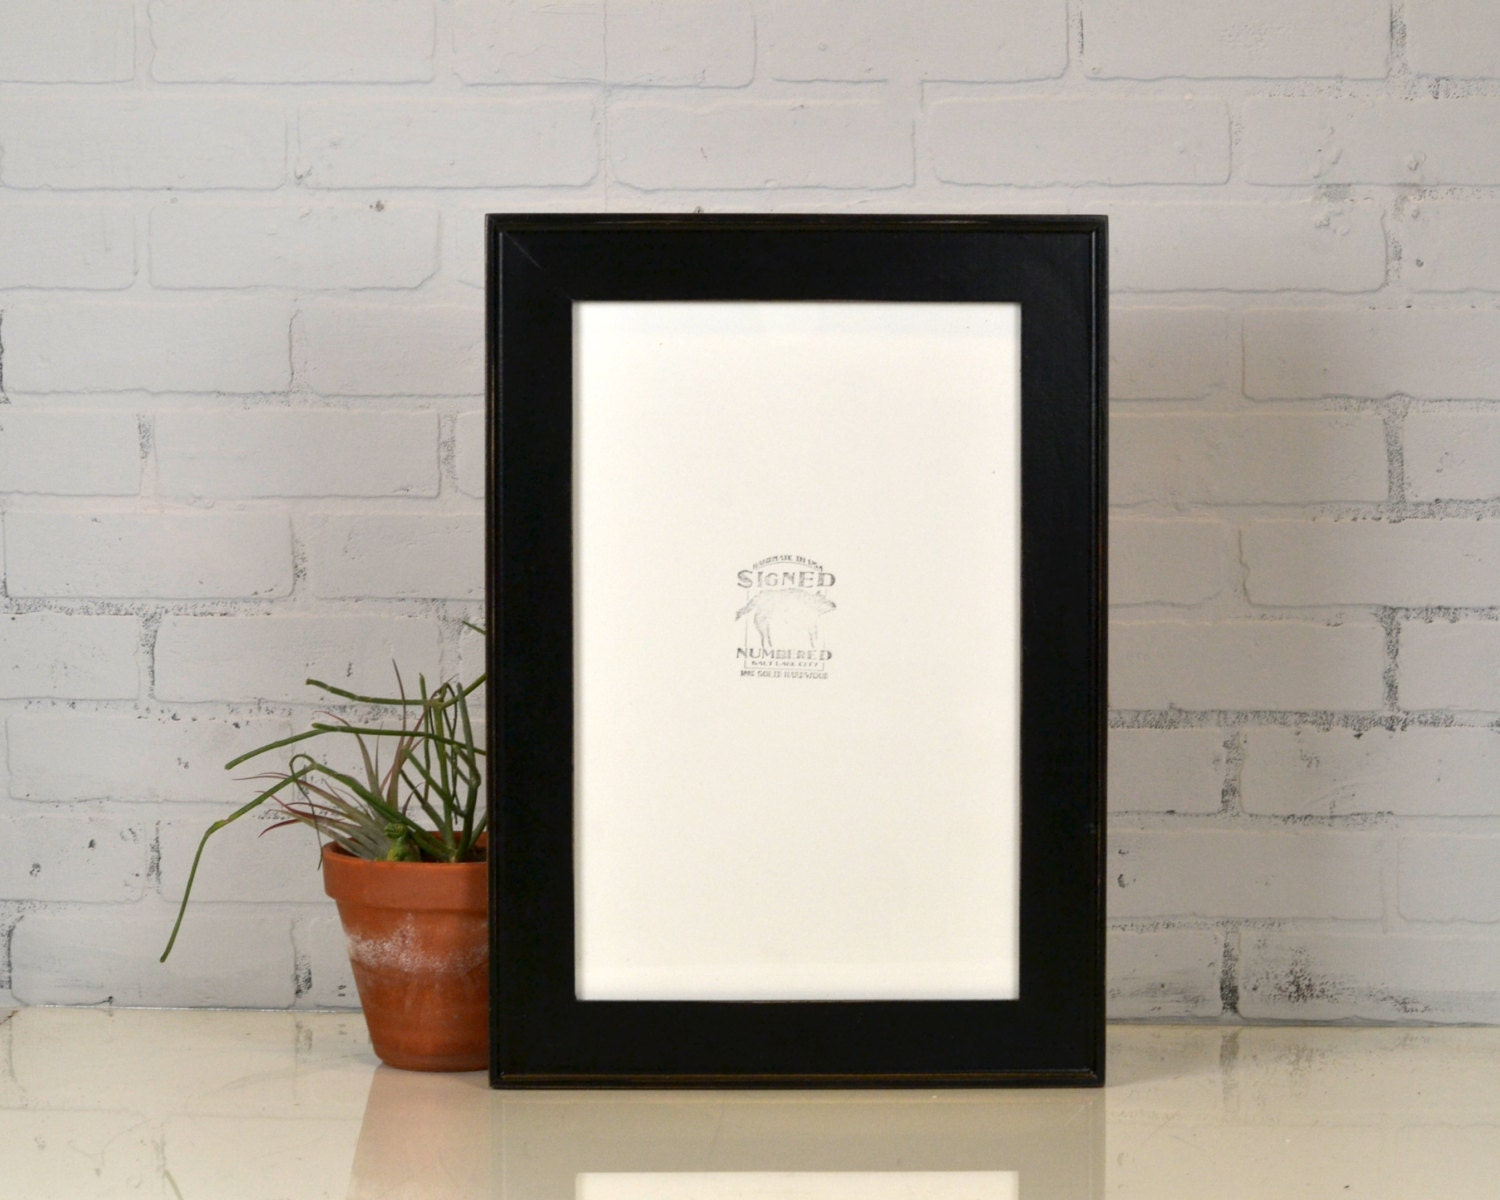 11x17 picture frame in oslo slope style with vintage black finish handmade 11 x 17 photo. Black Bedroom Furniture Sets. Home Design Ideas